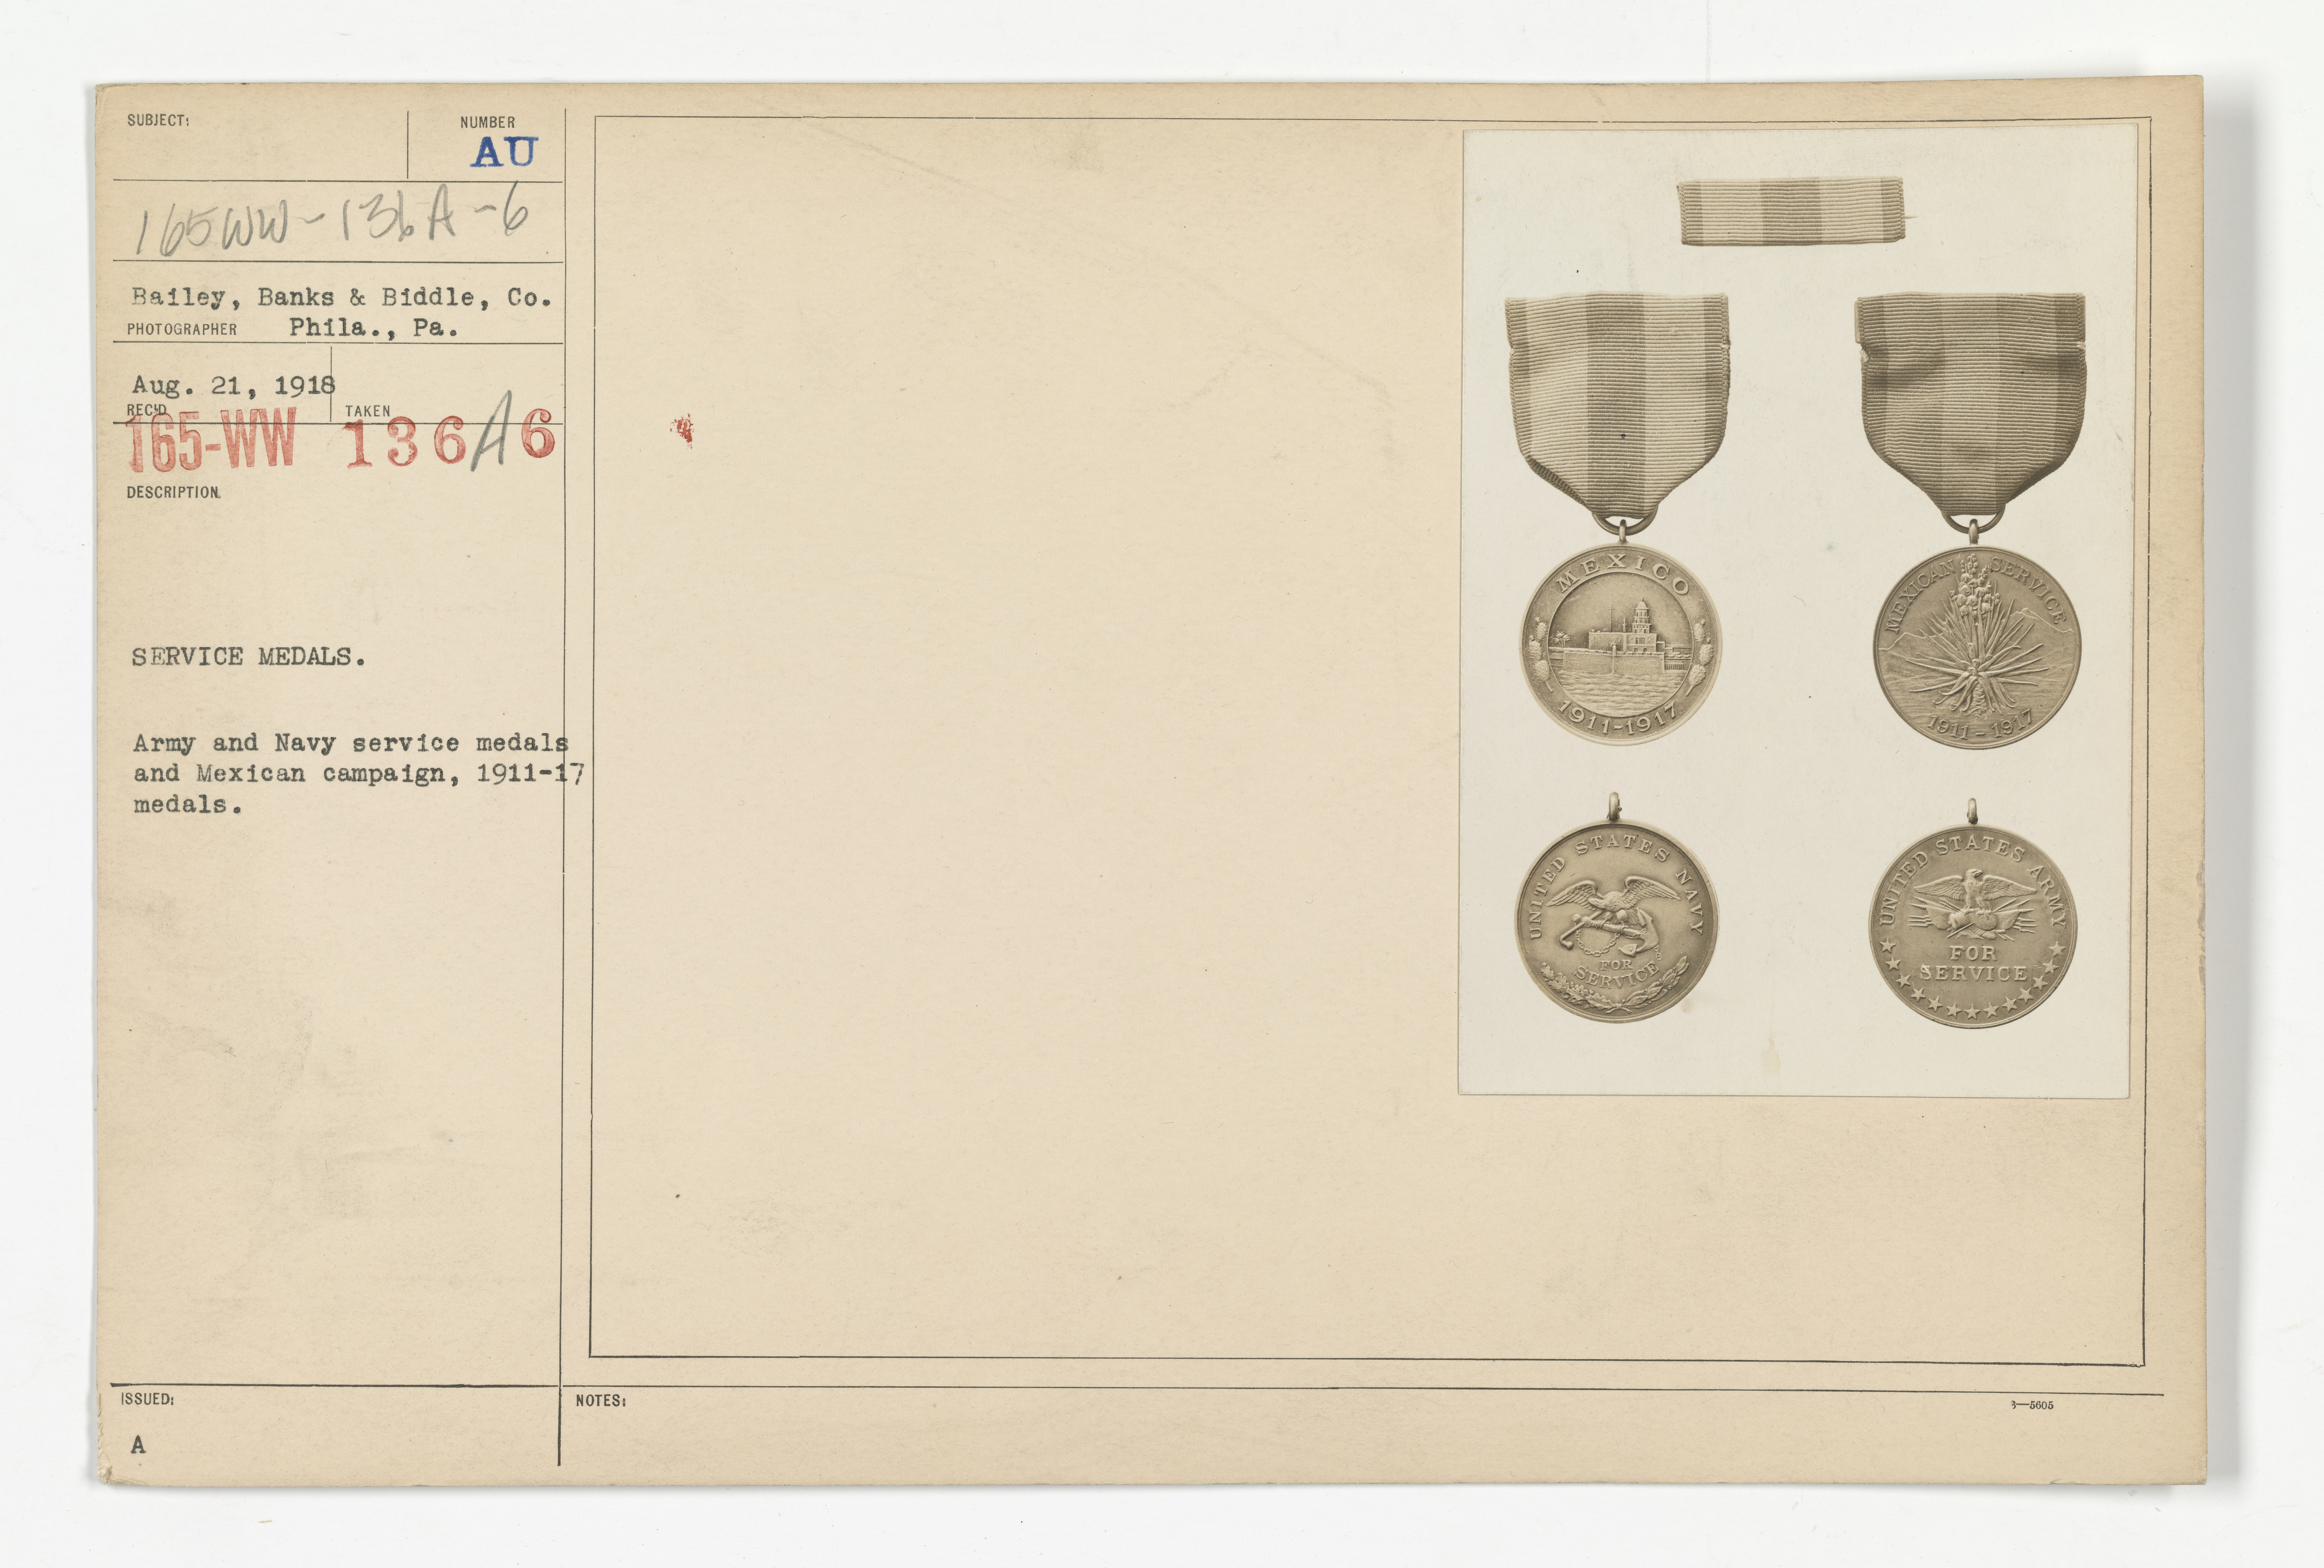 Decorations - Medals - American - Service medals. Army and Navy service medals and Mexican campaign, 1911-17 medals